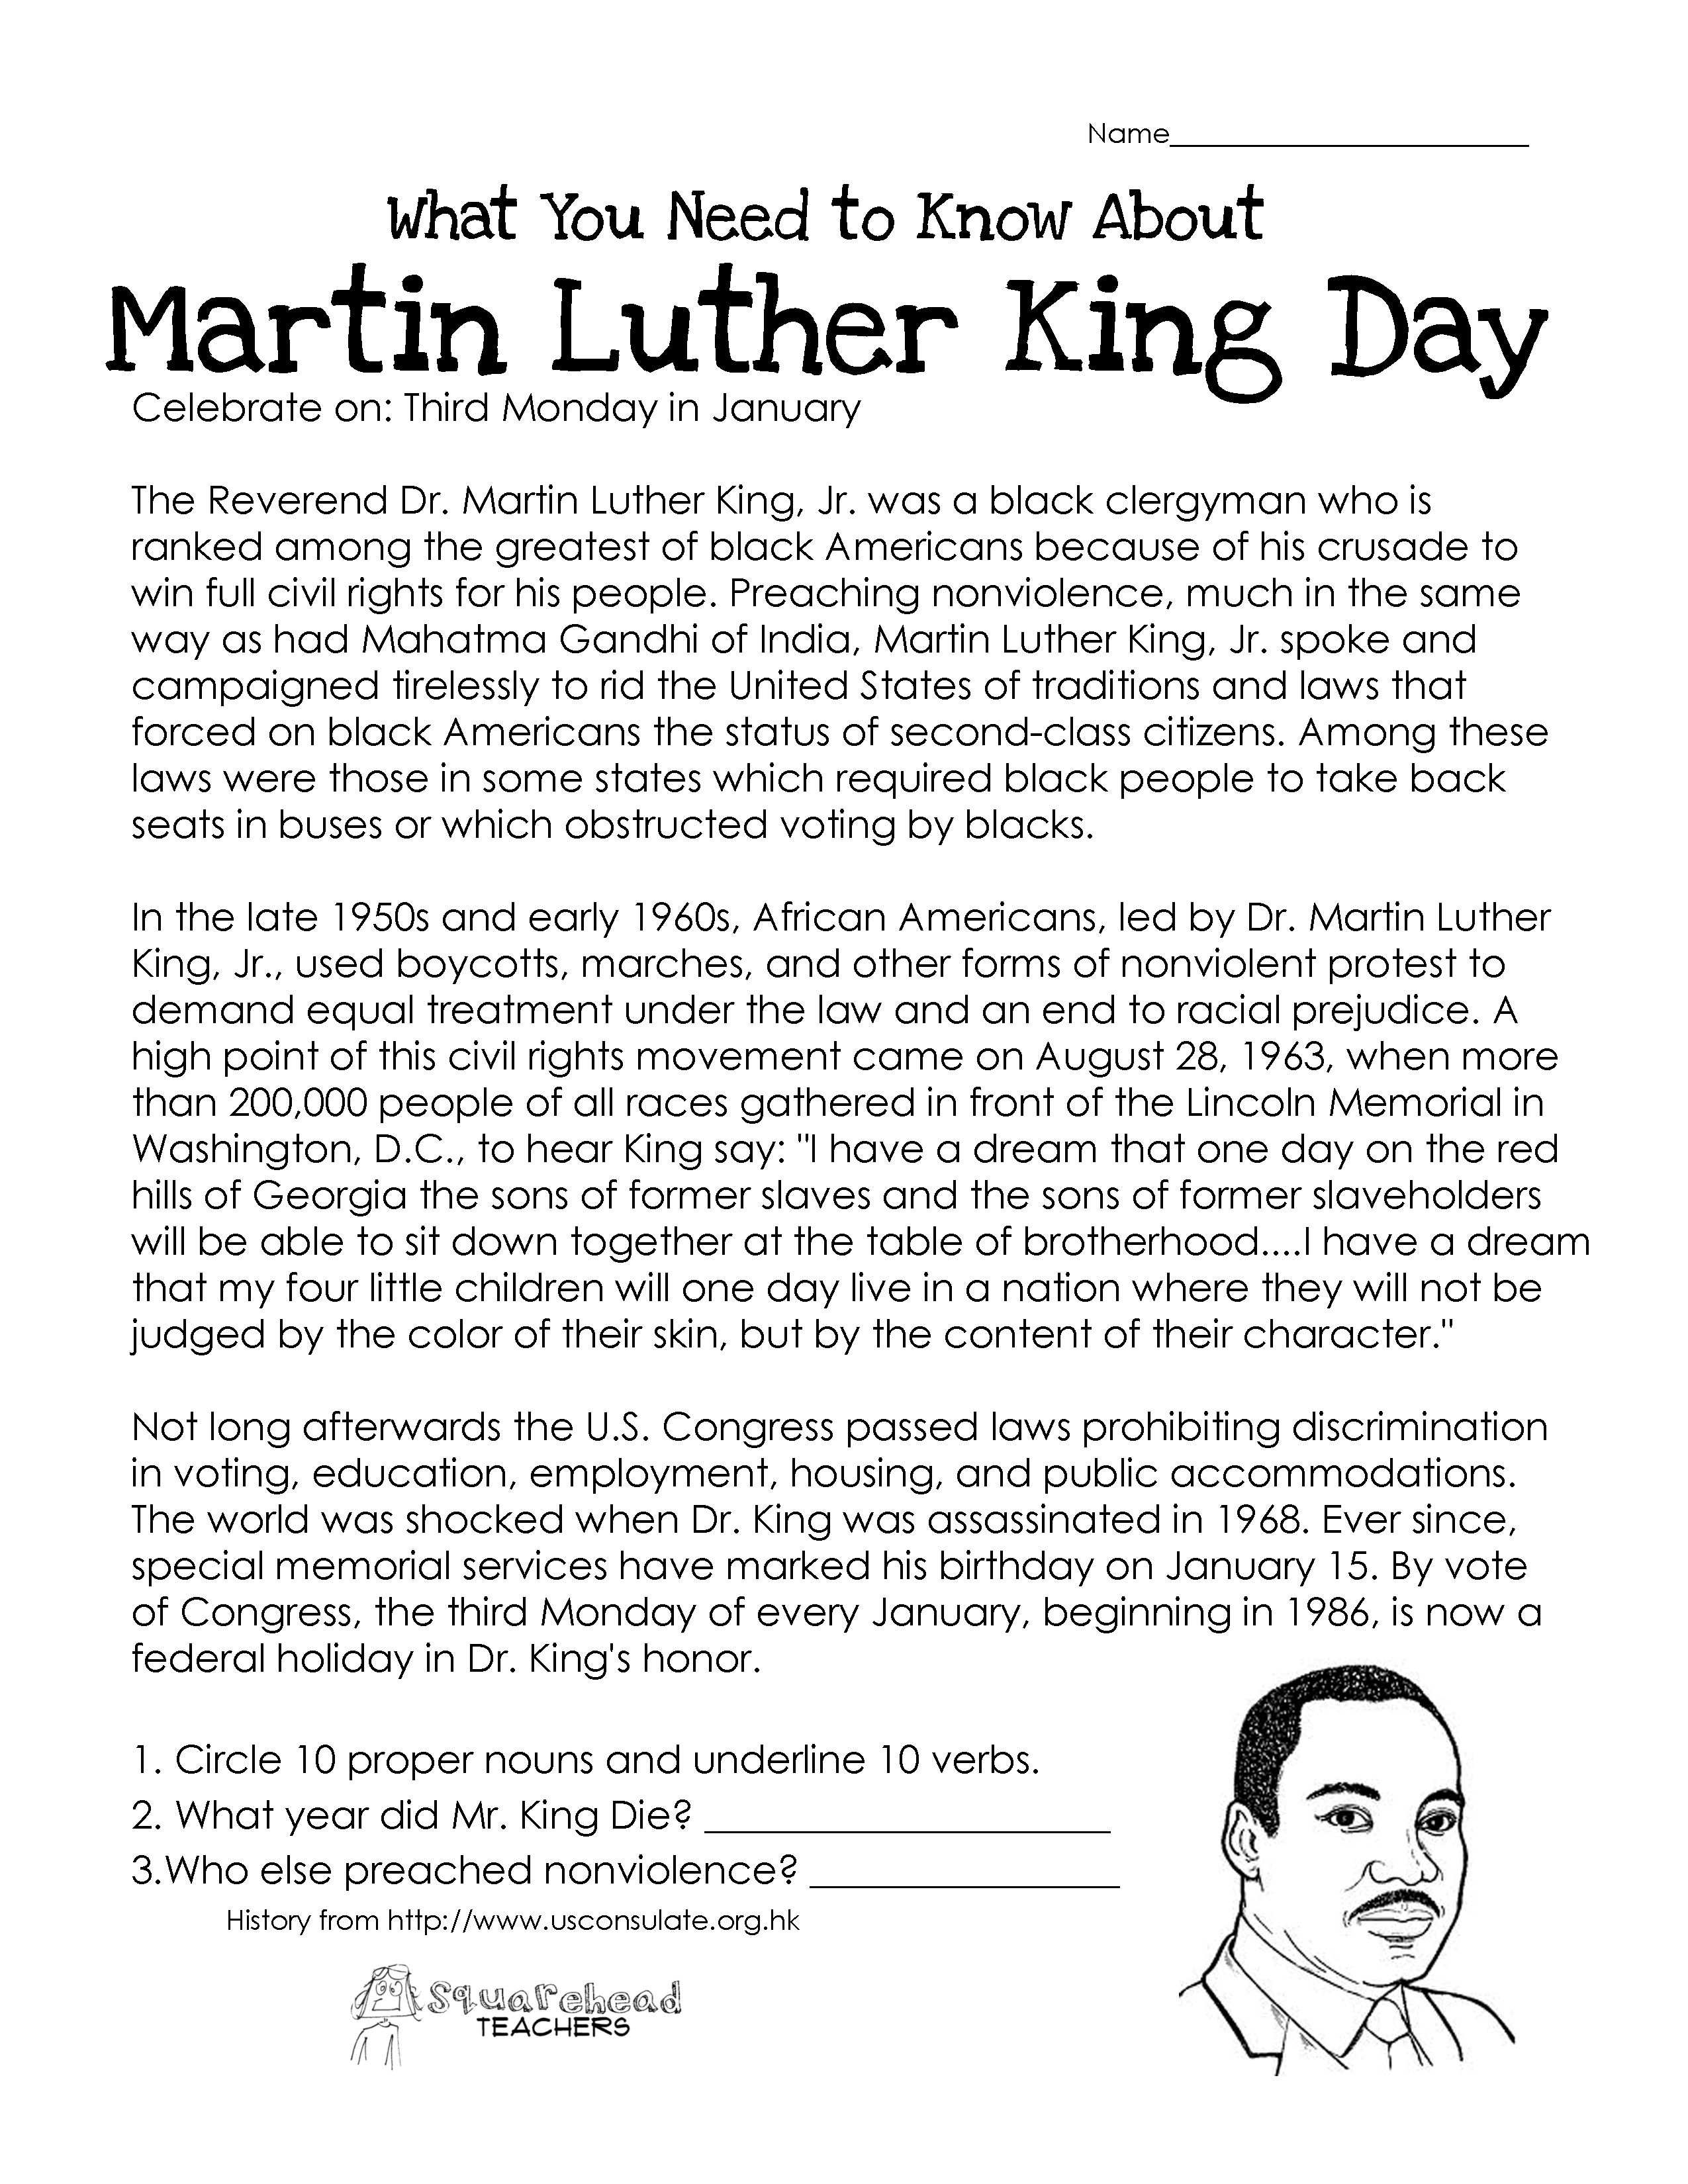 24 How to Draw Martin Luther King Extraordinay Martin Luther King Jr as well Martin Luther King  Jr   Day Worksheets   Family together with k Jr Coloring Pages Inspirational Martin Luther King Jr Worksheets moreover Martin Luther King Jr  Day English Language Arts Worksheets furthermore Martin King Jr Worksheets Grade Inspirational Historical Worksheet besides Free Martin Luther King Jr Multiplication Worksheets in addition Free Martin Luther King Jr Multiplication Worksheets furthermore Martin Luther King Coloring Pages   Martin luther king   Pinterest likewise  besides Martin Luther King Jr Facts  Worksheets  Activism  History   Kids further Important African Americans  prehension Martin Luther King additionally Have Fun Learning Martin Luther King Jr  Worksheets also dr martin luther king jr worksheets – iranapp co additionally  together with  likewise K Day Worksheets. on martin luther king jr worksheets